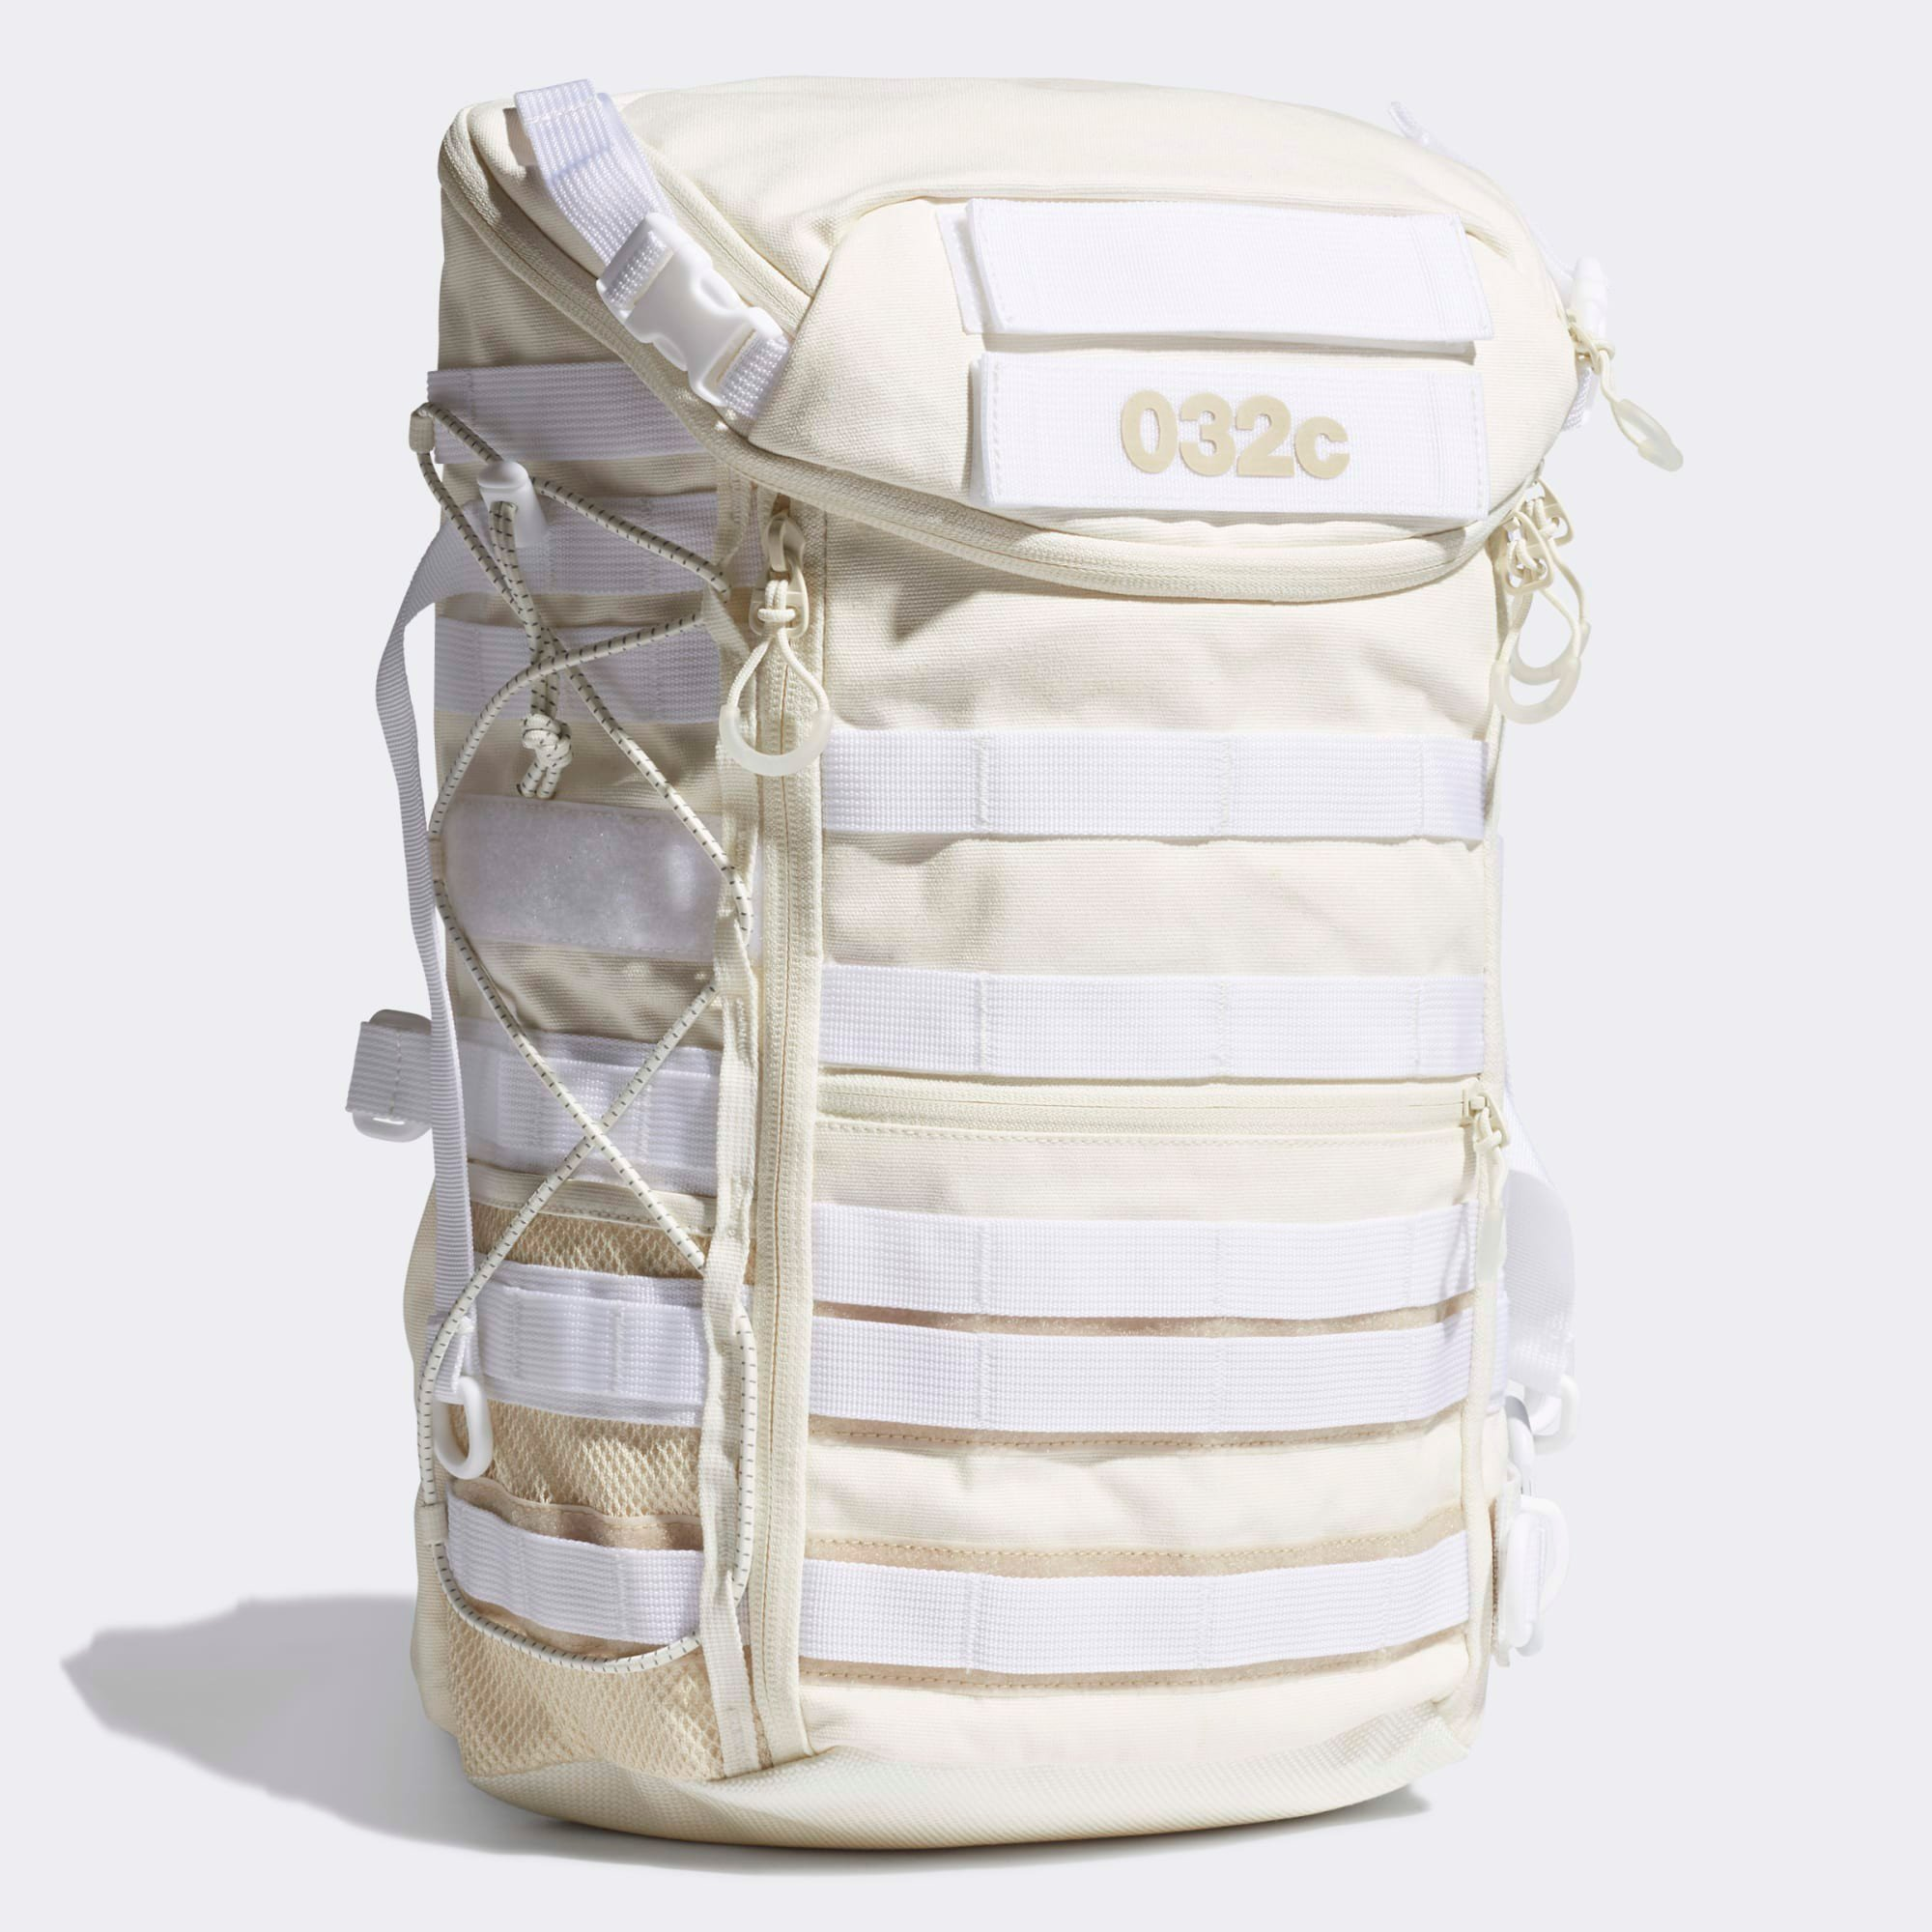 adidas 032C Backpack - Off White